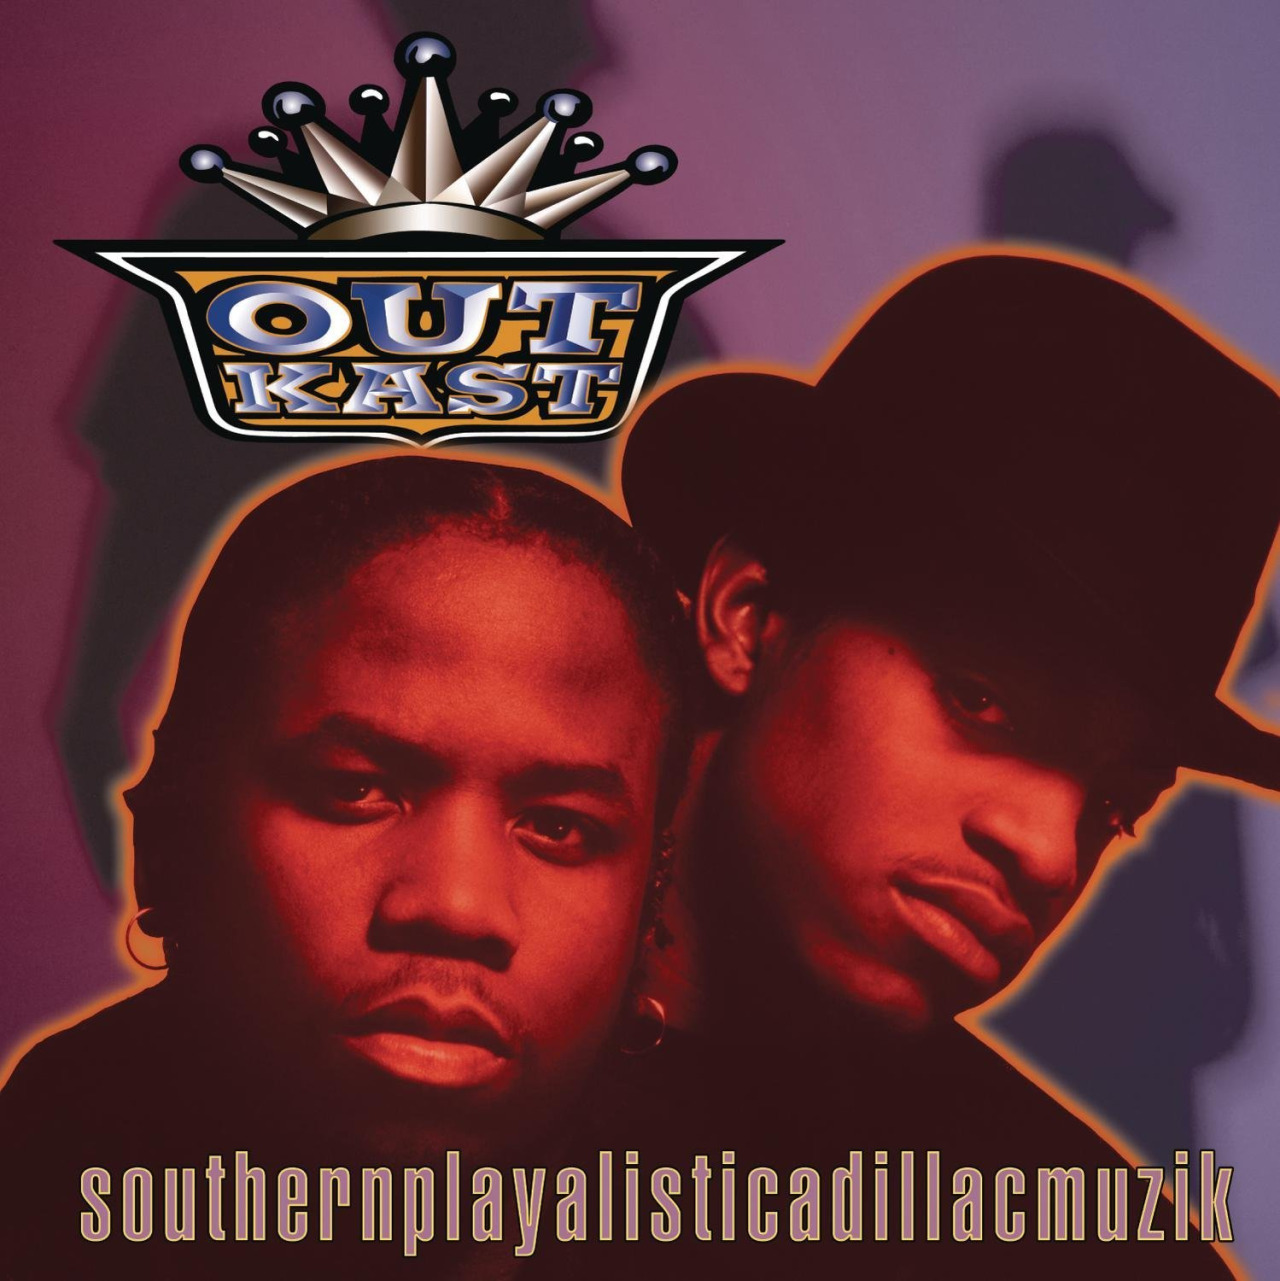 The Source |Today In Hip Hop History: Outkast Drops Their Debut Album 'Southernplayalisticadillacmuzik' 24 Years Ago